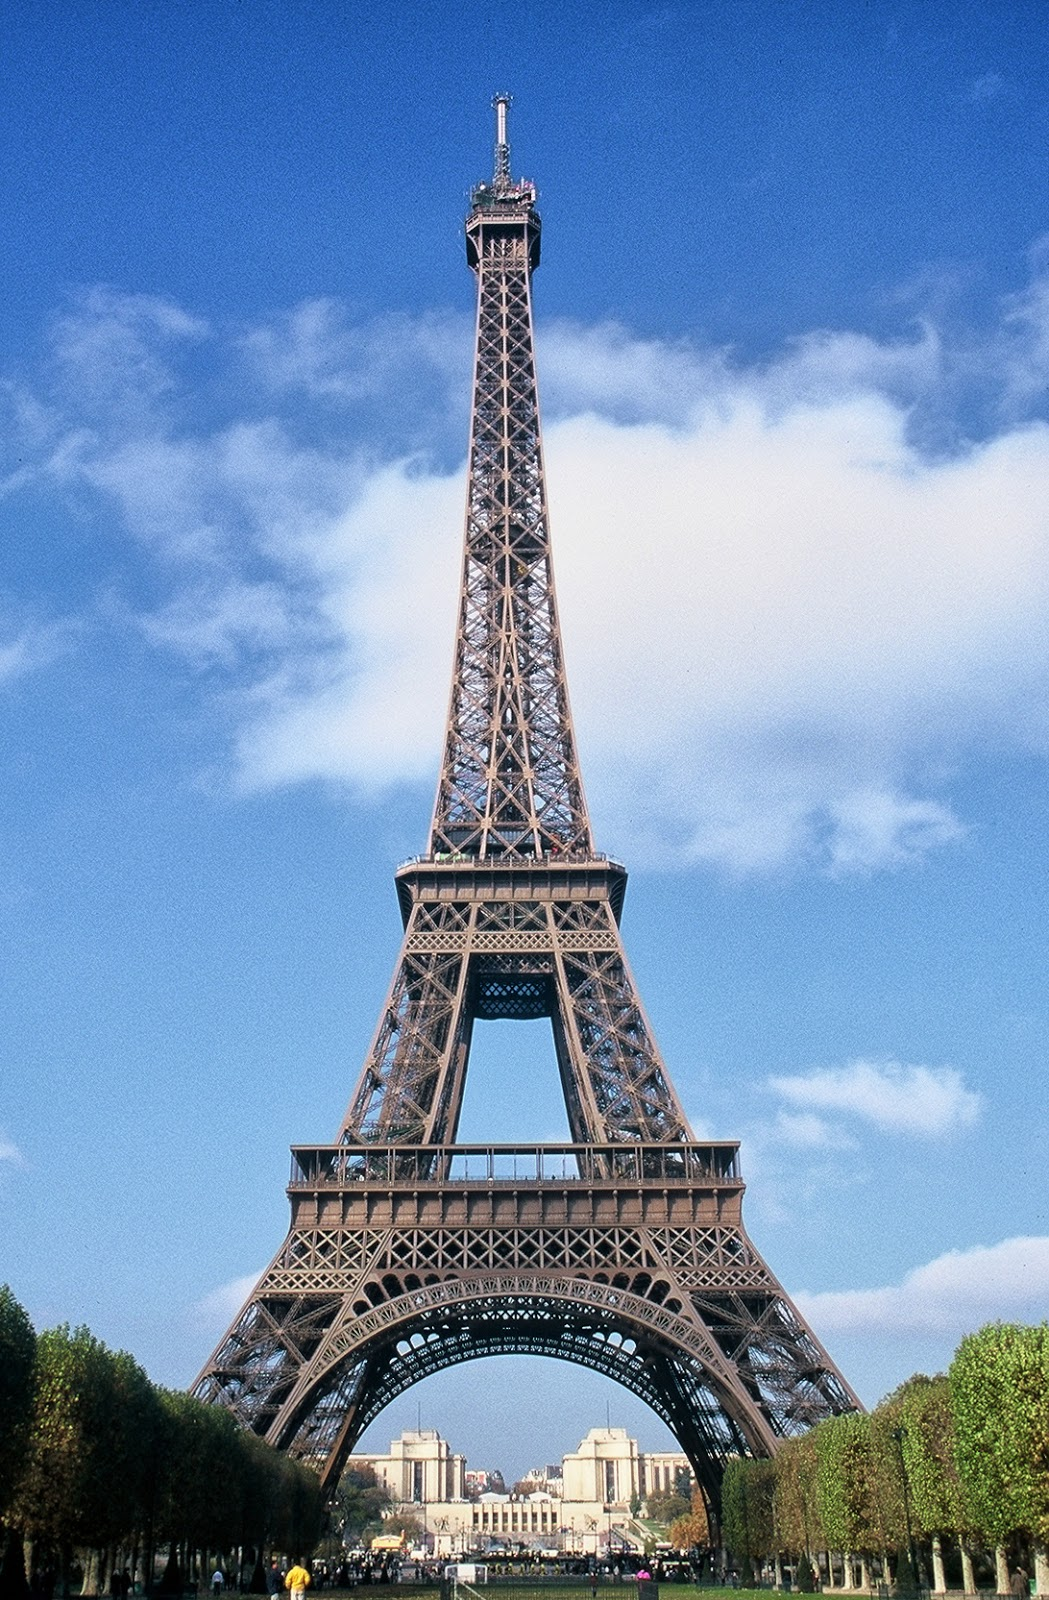 World visits tours the eiffel tower famous symbol paris for Most famous architecture in the world